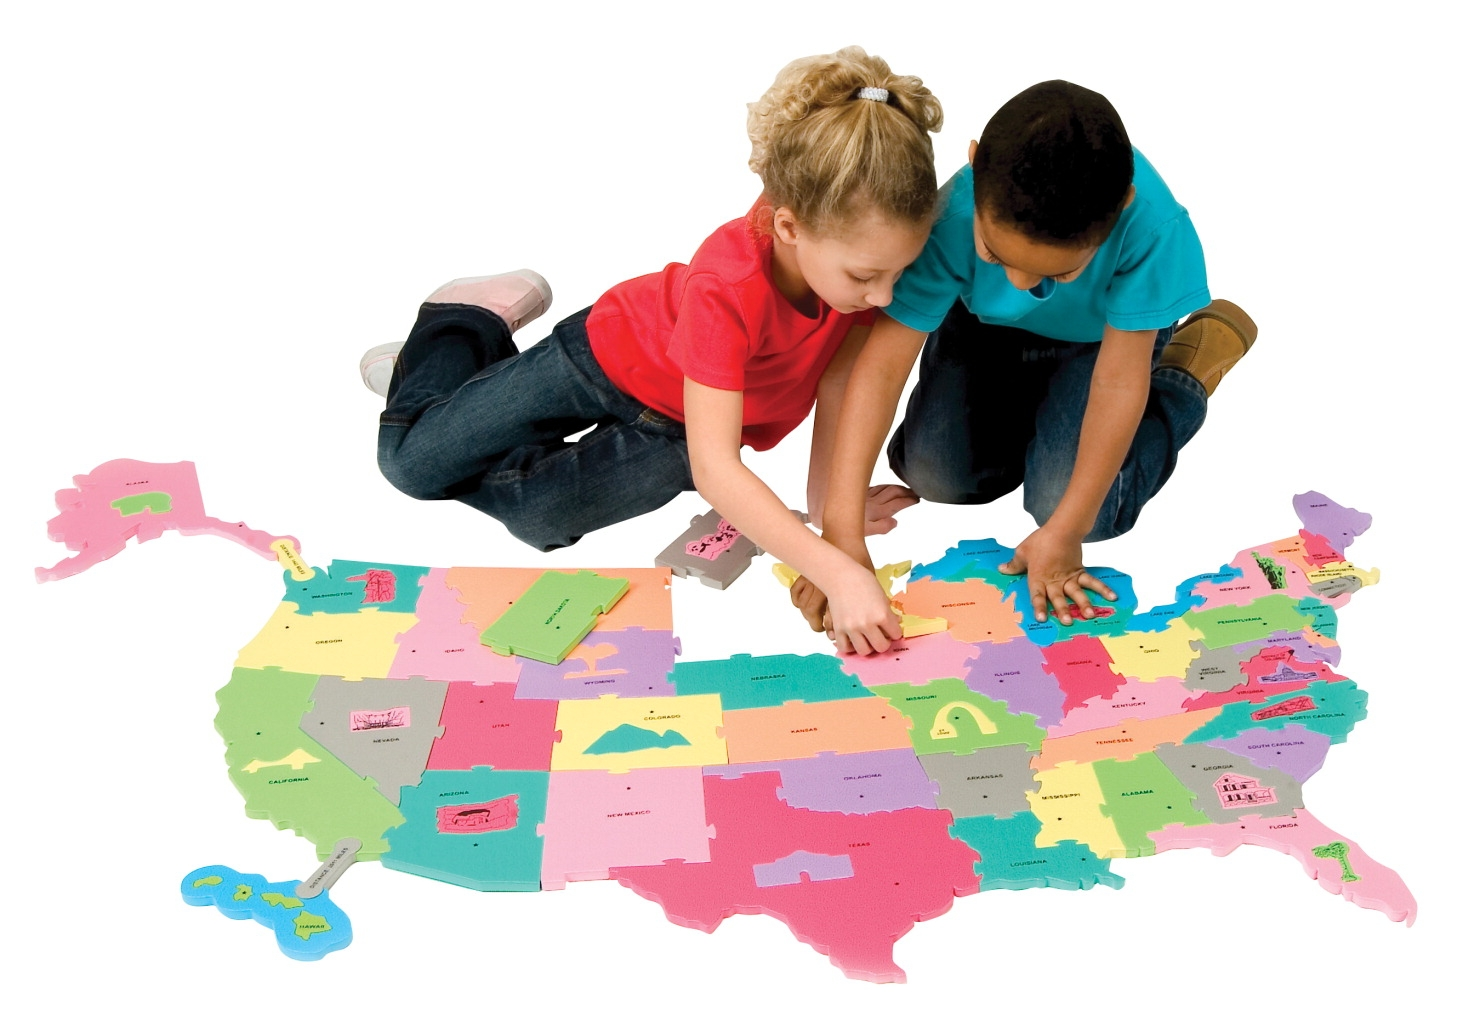 Creativity Street Giant Map Puzzle - 075729 - Toys Floor Puzzles 075729